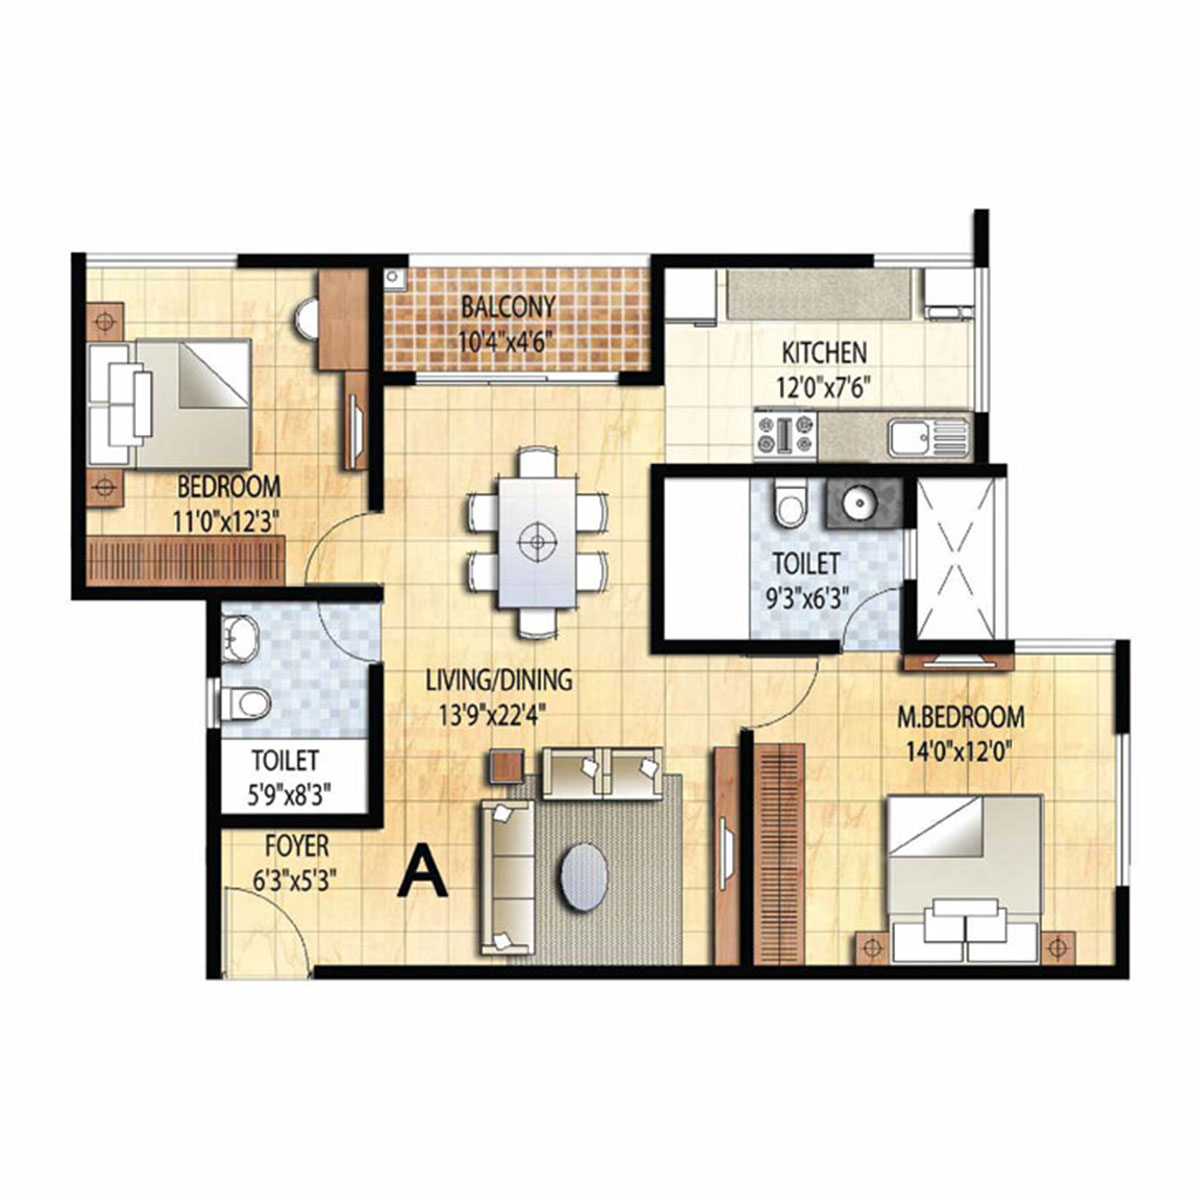 Type A - 2 Bed - 1208 Sq Ft